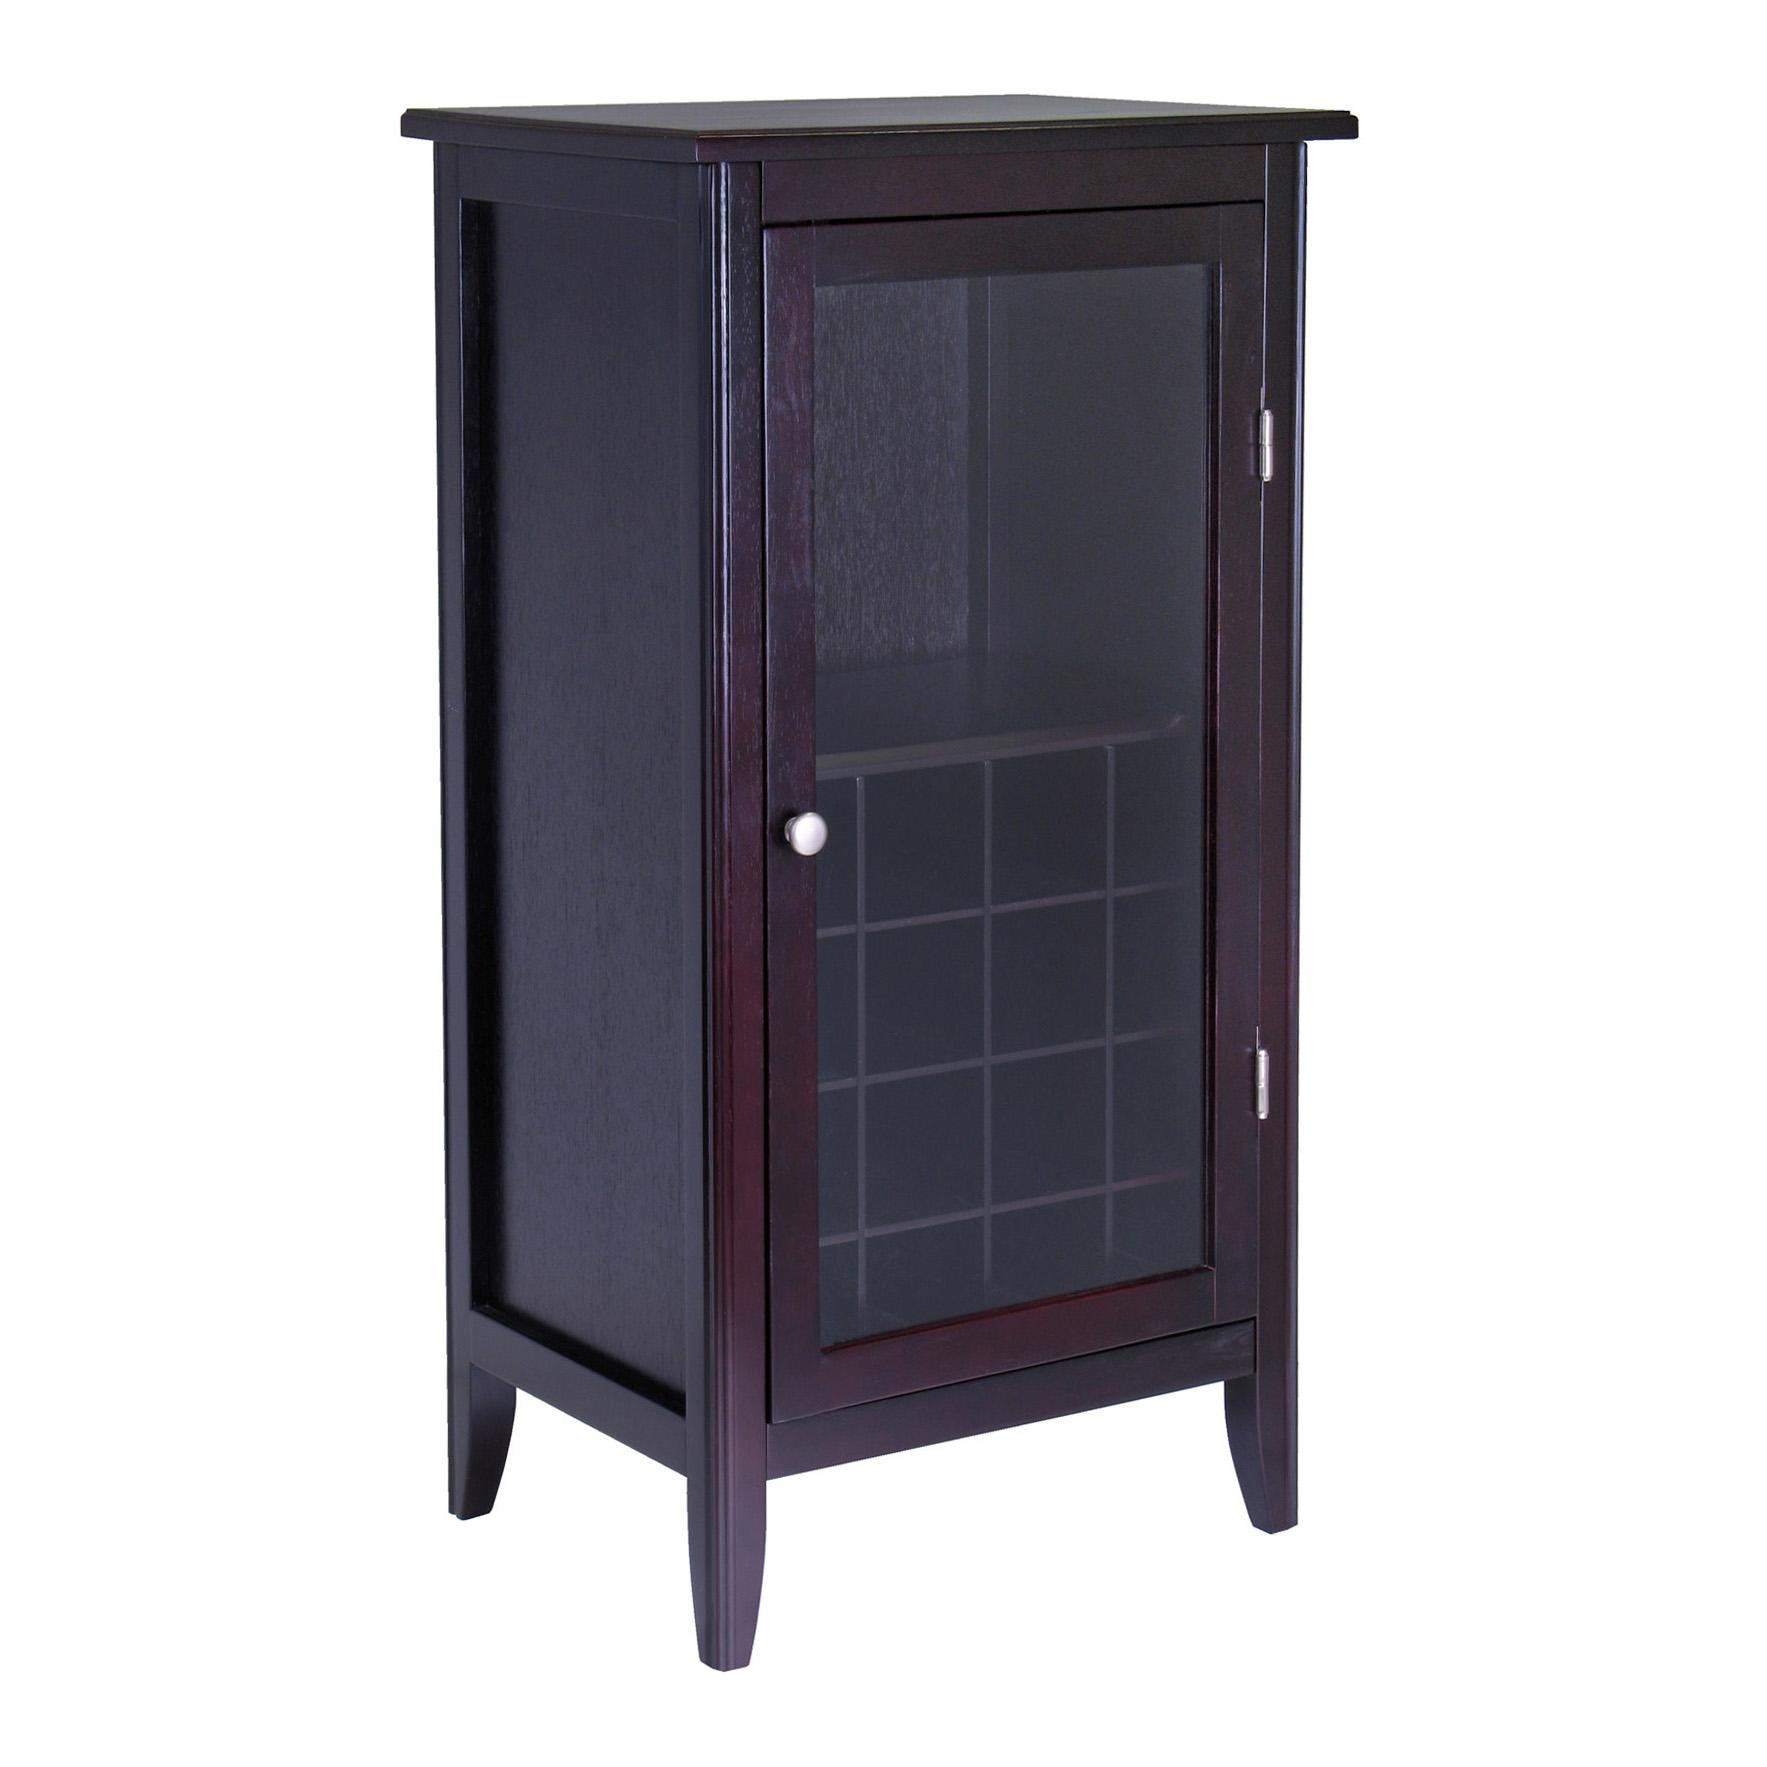 Winsome wood wine cabinet with glass door for 1 door cabinet